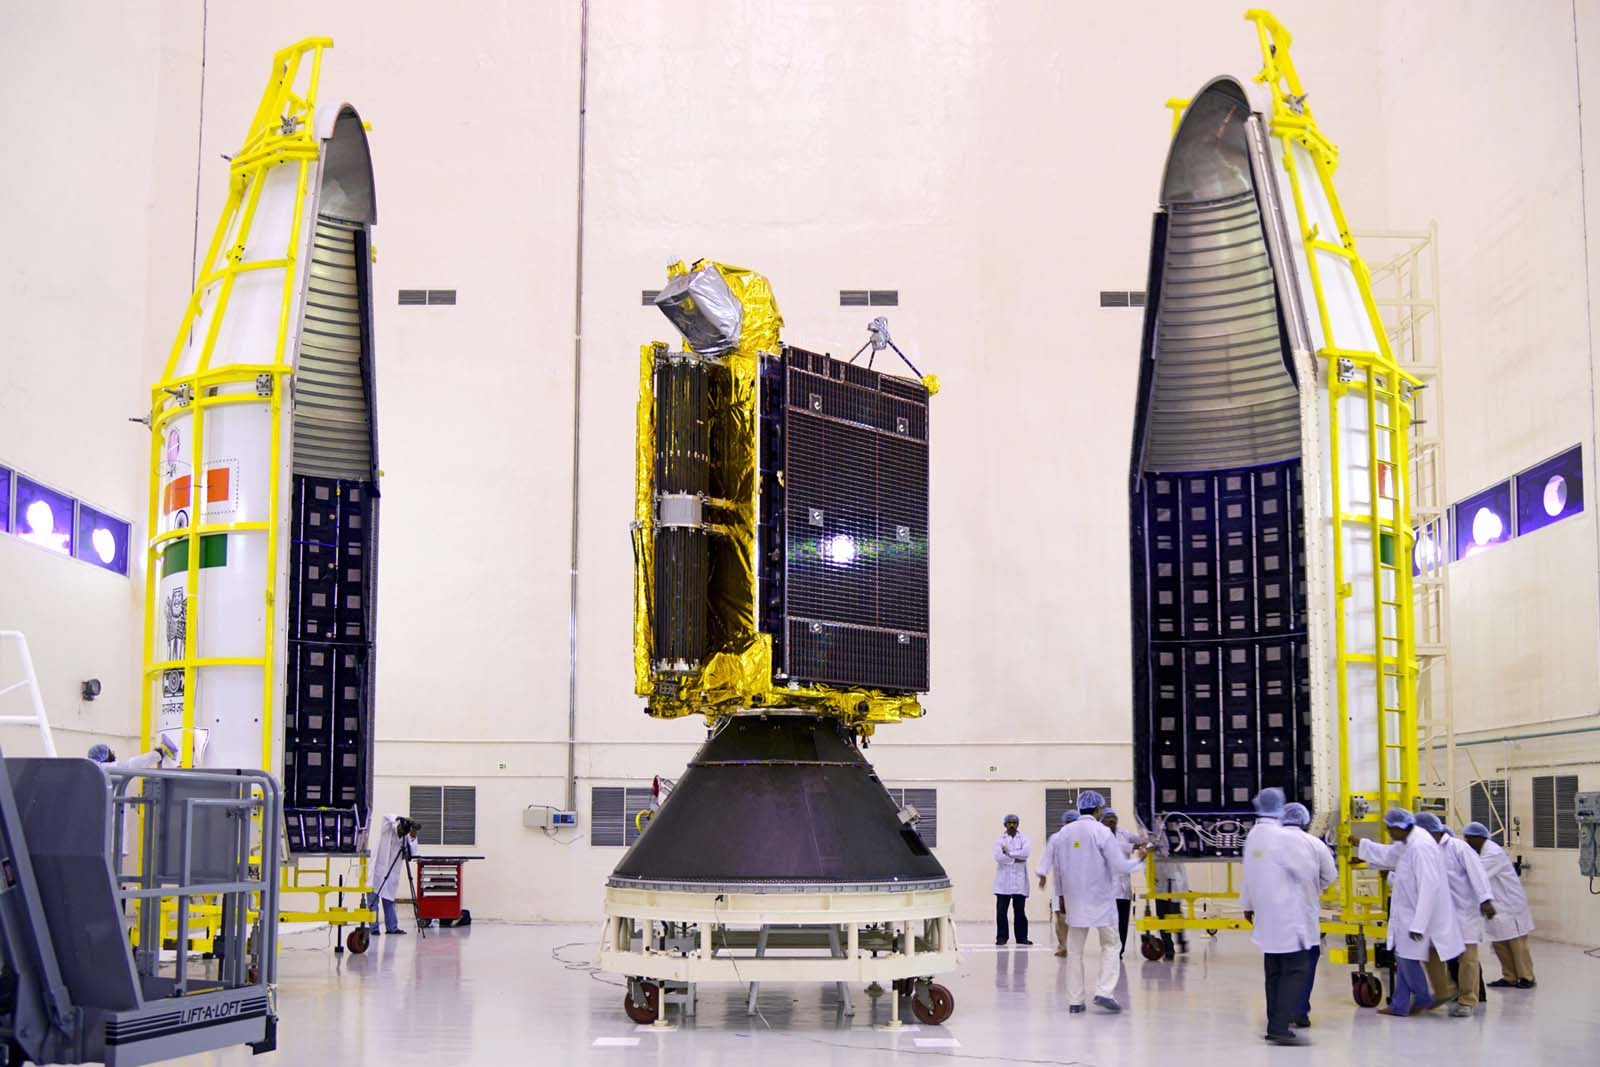 GSAT-6 seen with two halves of payload faring of the GSLV-D6.